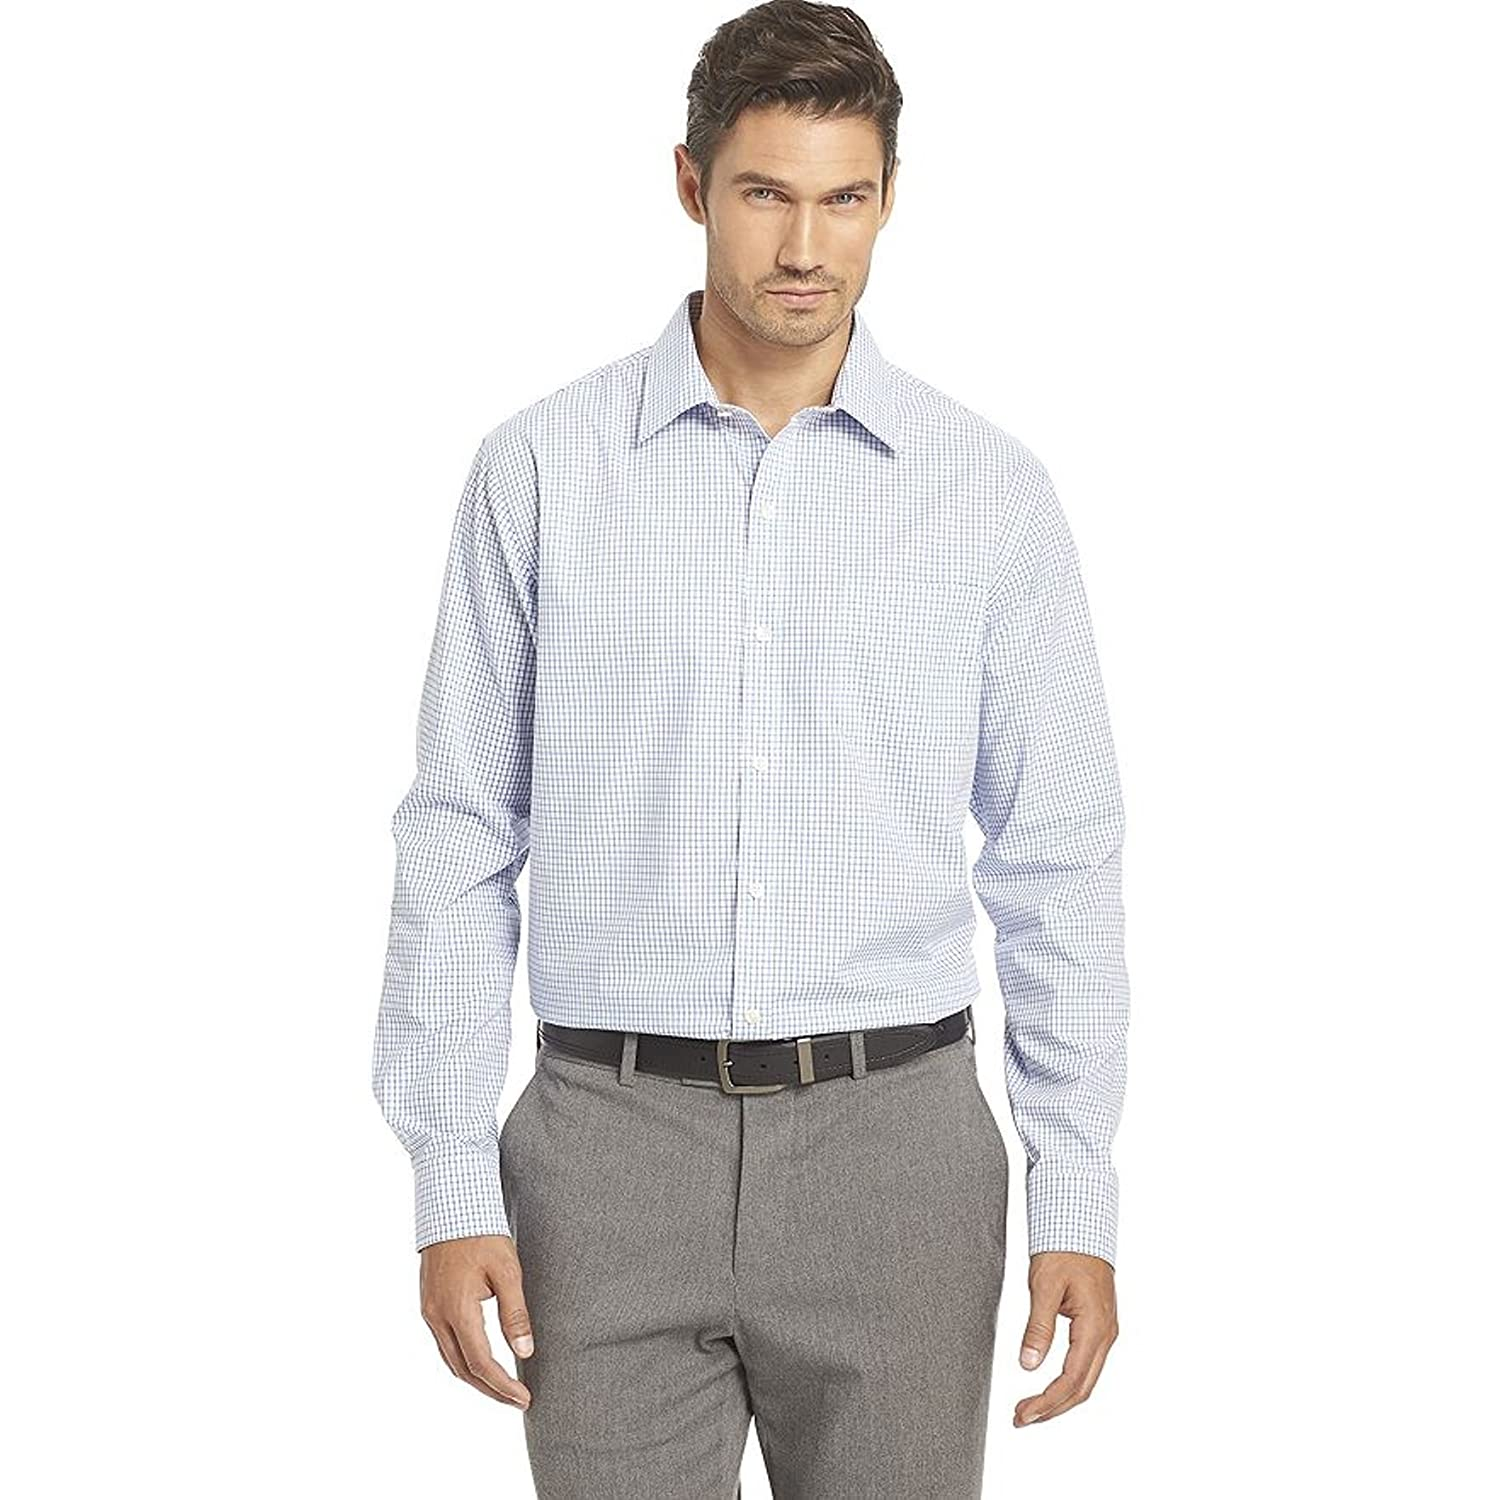 034a1e3f39266 Men s Van Heusen Traveler Stretch Classic Fit No Iron Shirt at Amazon Men s  Clothing store